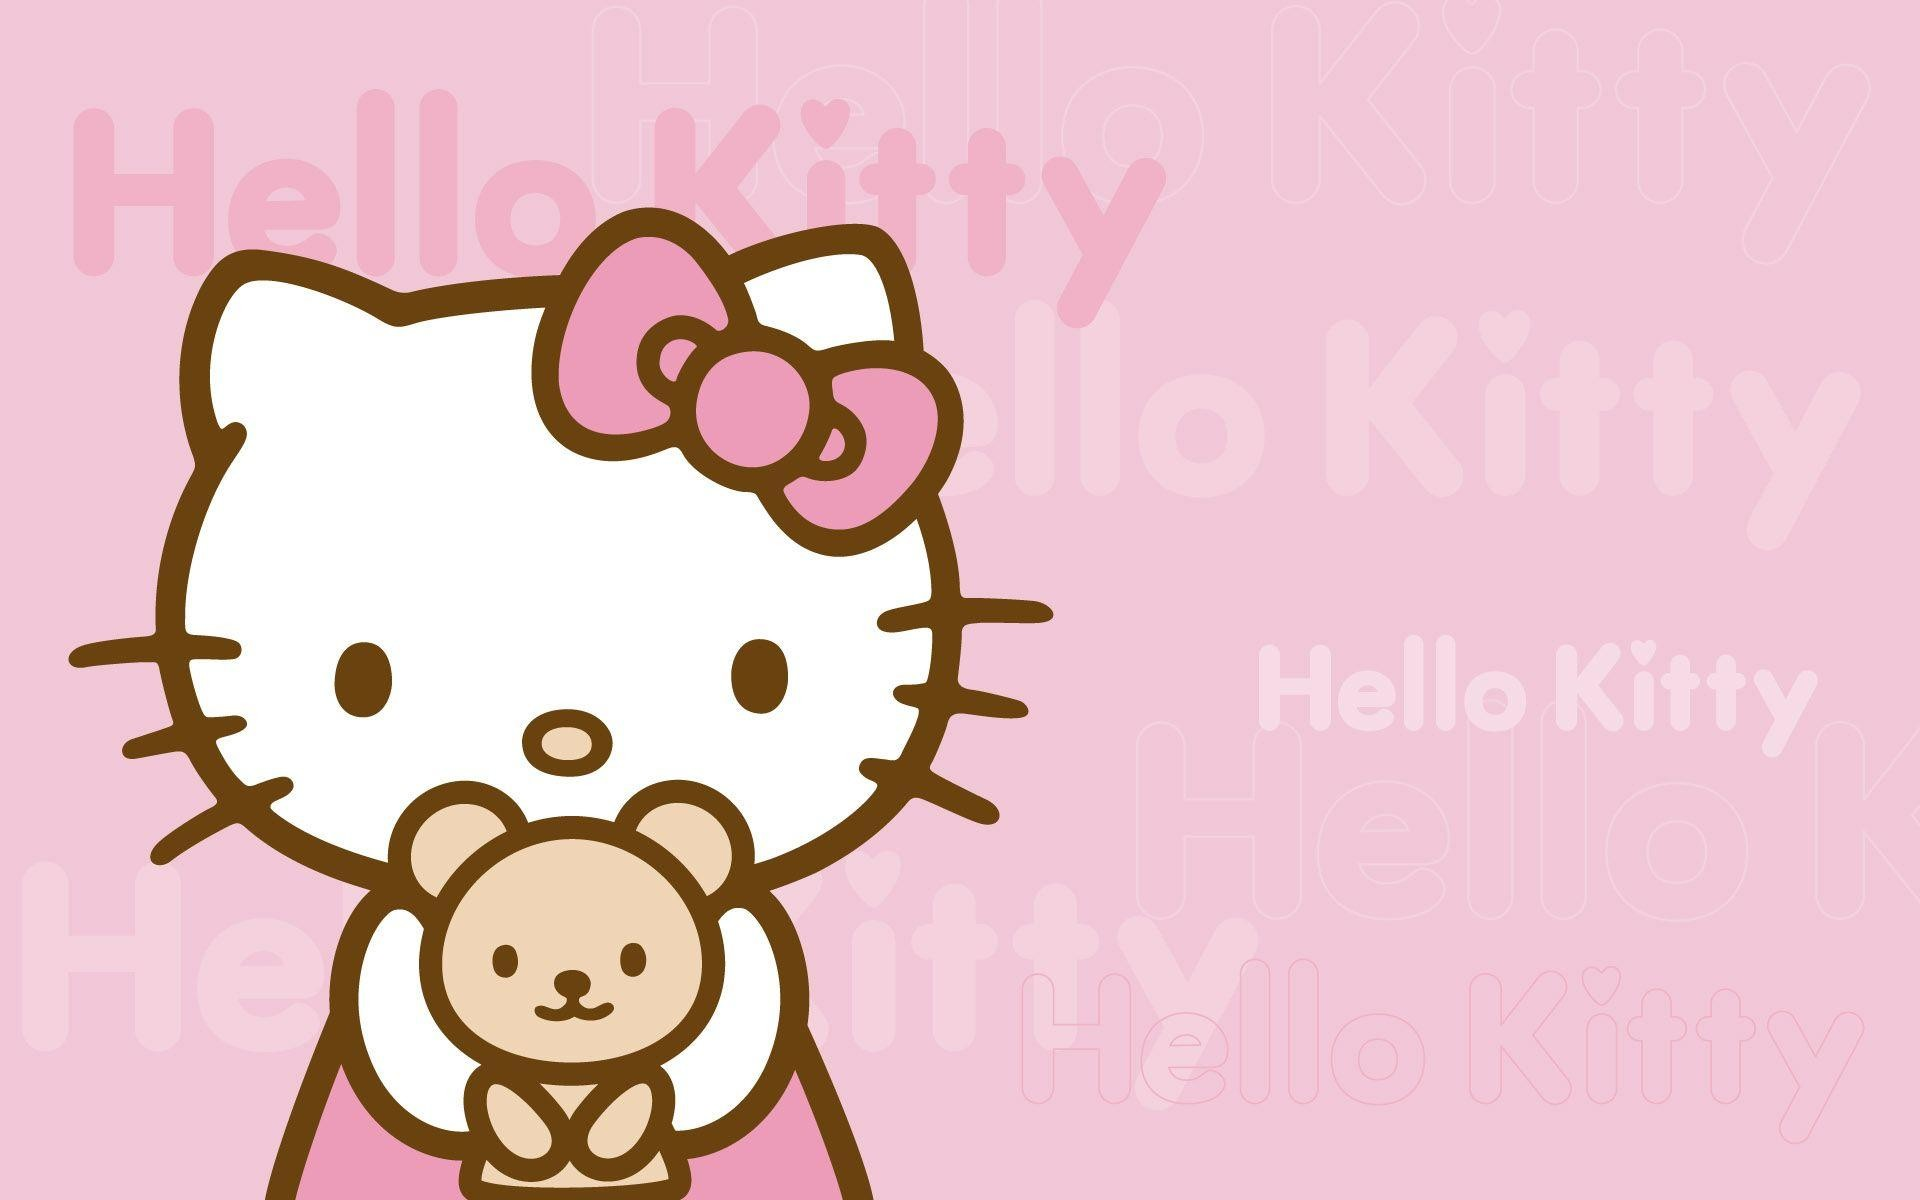 Amazing Wallpaper Hello Kitty Note 4 - 929056-cute-wallpapers-of-hello-kitty-1920x1200-for-samsung-galaxy  Perfect Image Reference_672210.jpg